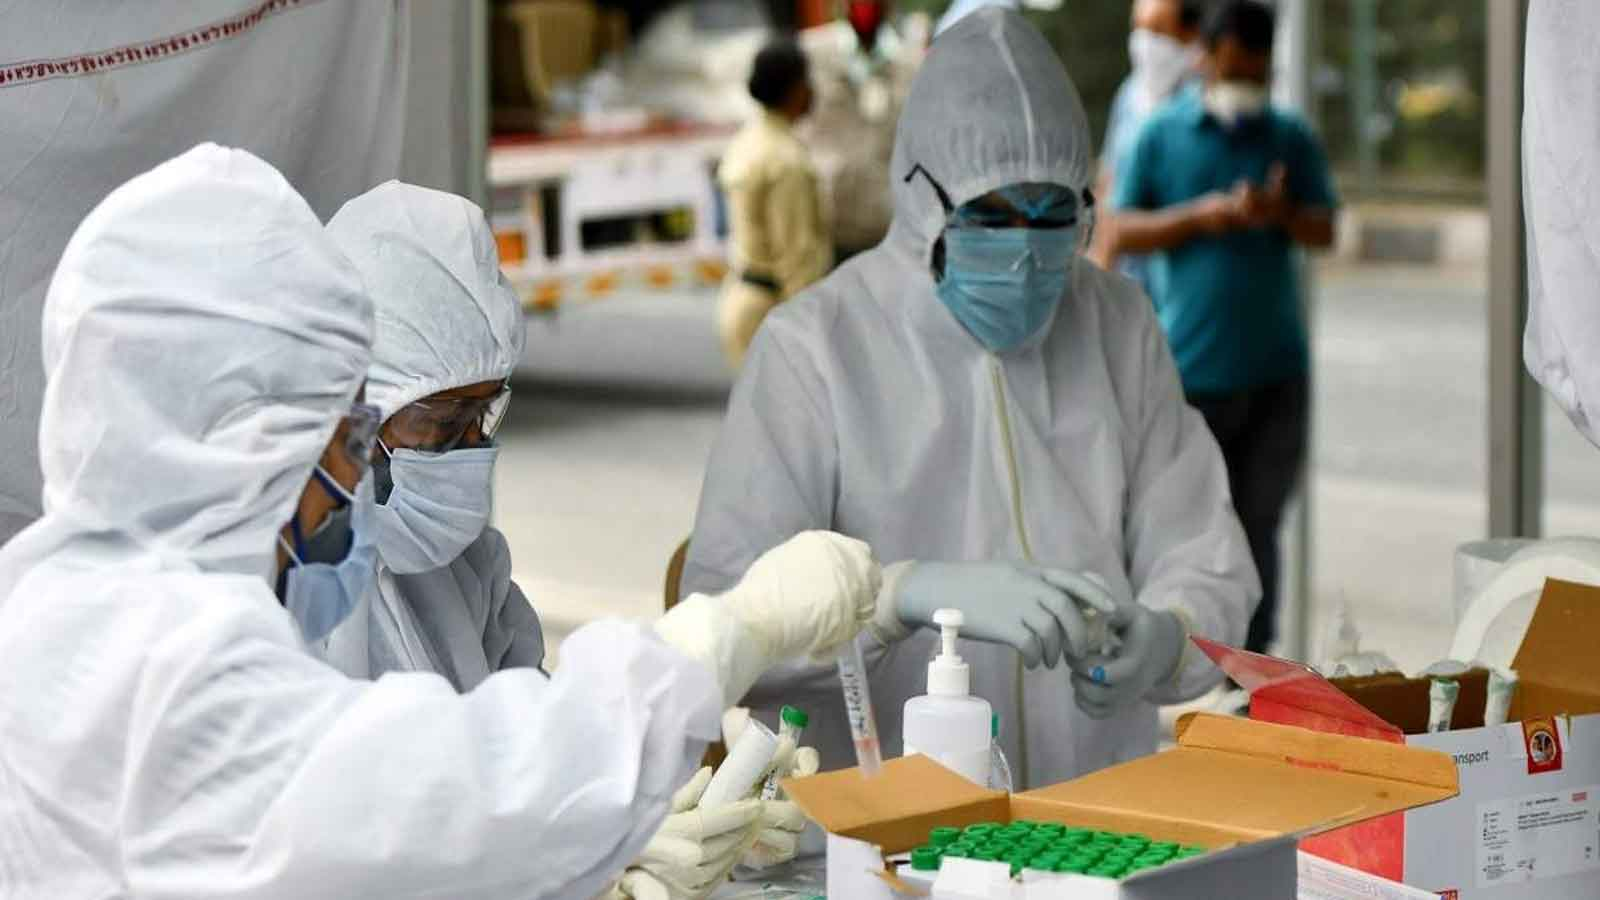 strides-in-covid-testing-vaccine-developments-but-crisis-far-from-over-scientists